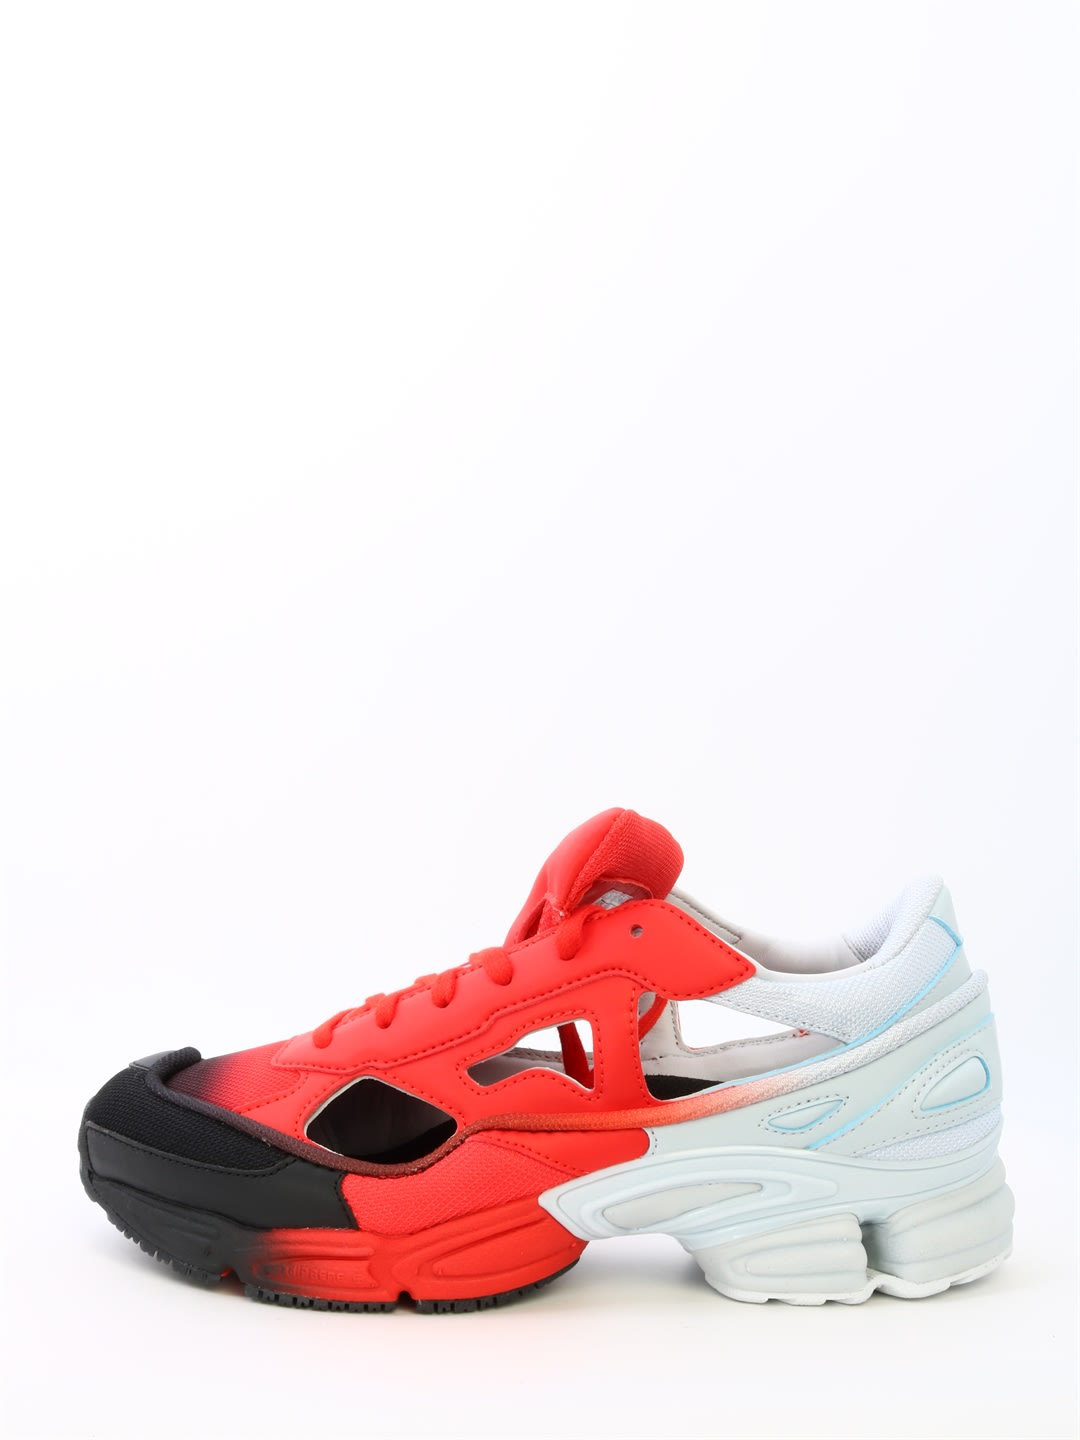 100% authentic 977fa ca46d Adidas By Raf Simons Adidas By Raf Simons Sneaker Replicant ...